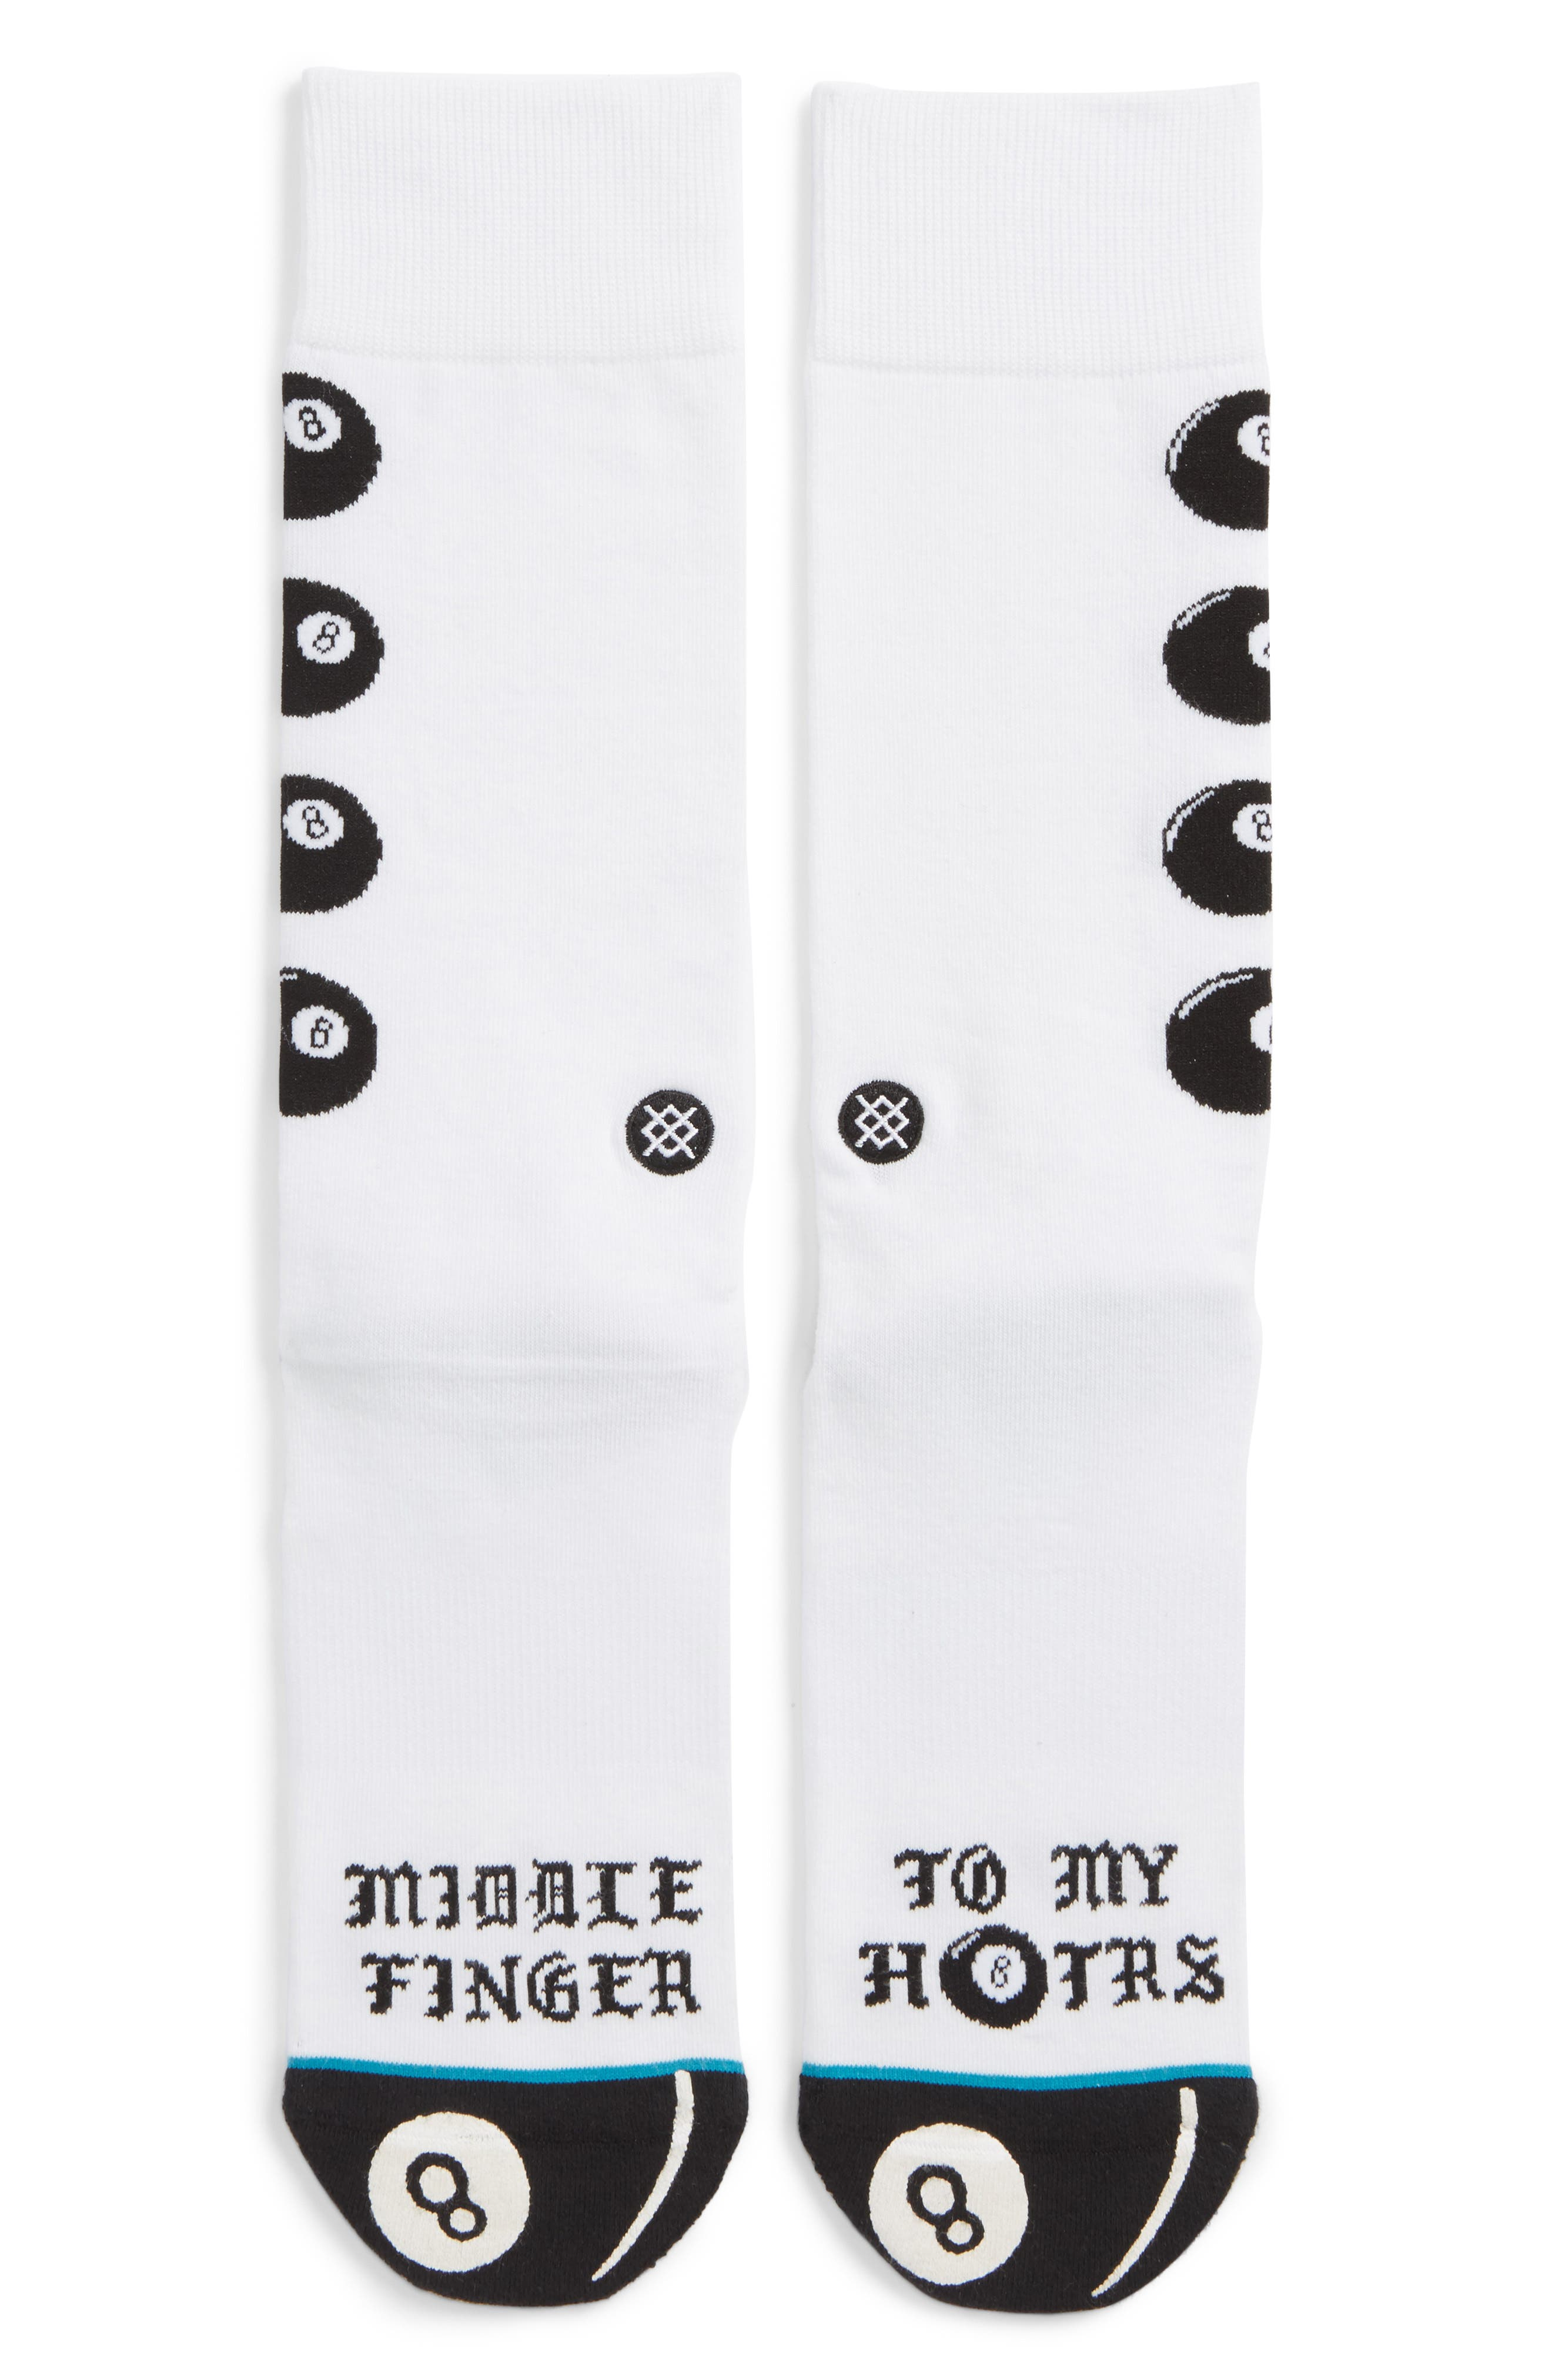 H8ters Socks,                             Main thumbnail 1, color,                             WHITE